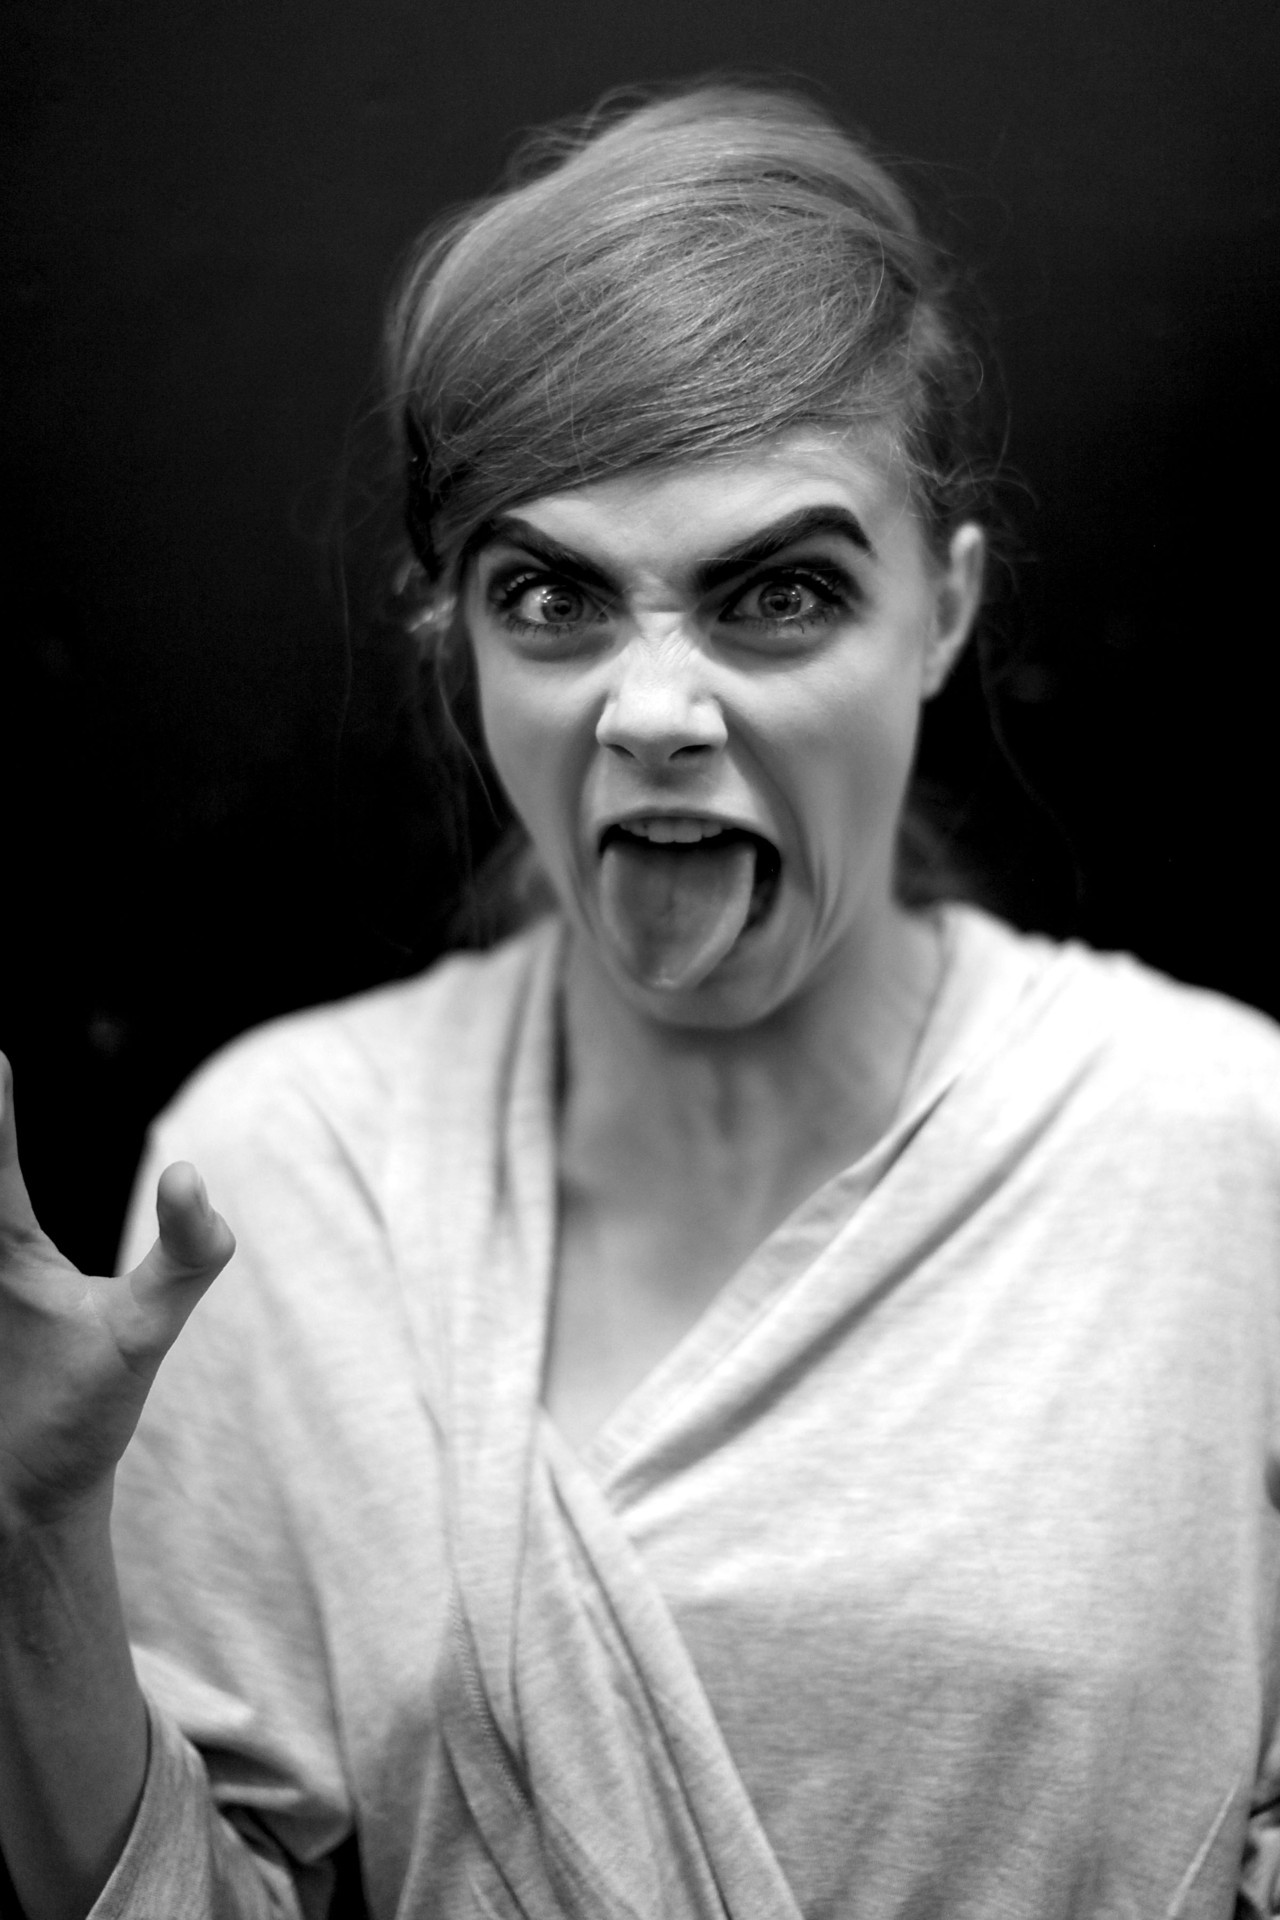 Cara Delevingne backstage at MARC JACOBS making faces for me… SEE THE .GIF @: http://nymag.com/thecut/